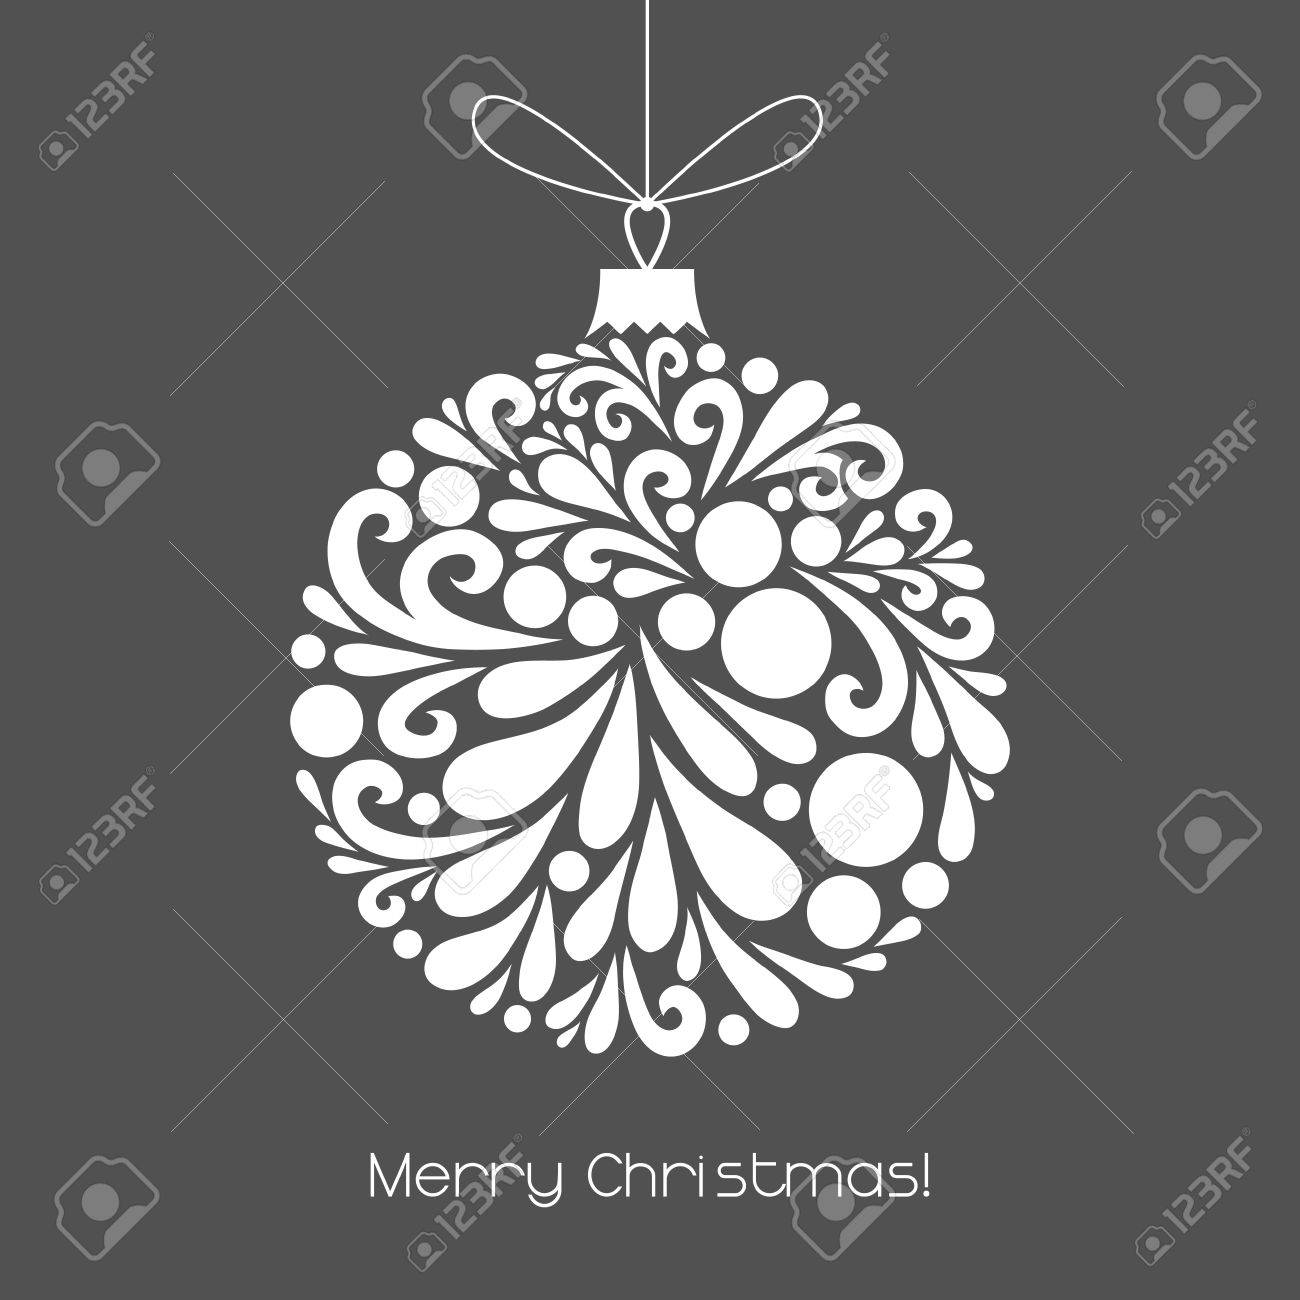 Vector christmas decoration made from swirl shapes unusual circle banco de imagens vector christmas decoration made from swirl shapes unusual circle design element greeting invitation card simple decorative gray and stopboris Image collections